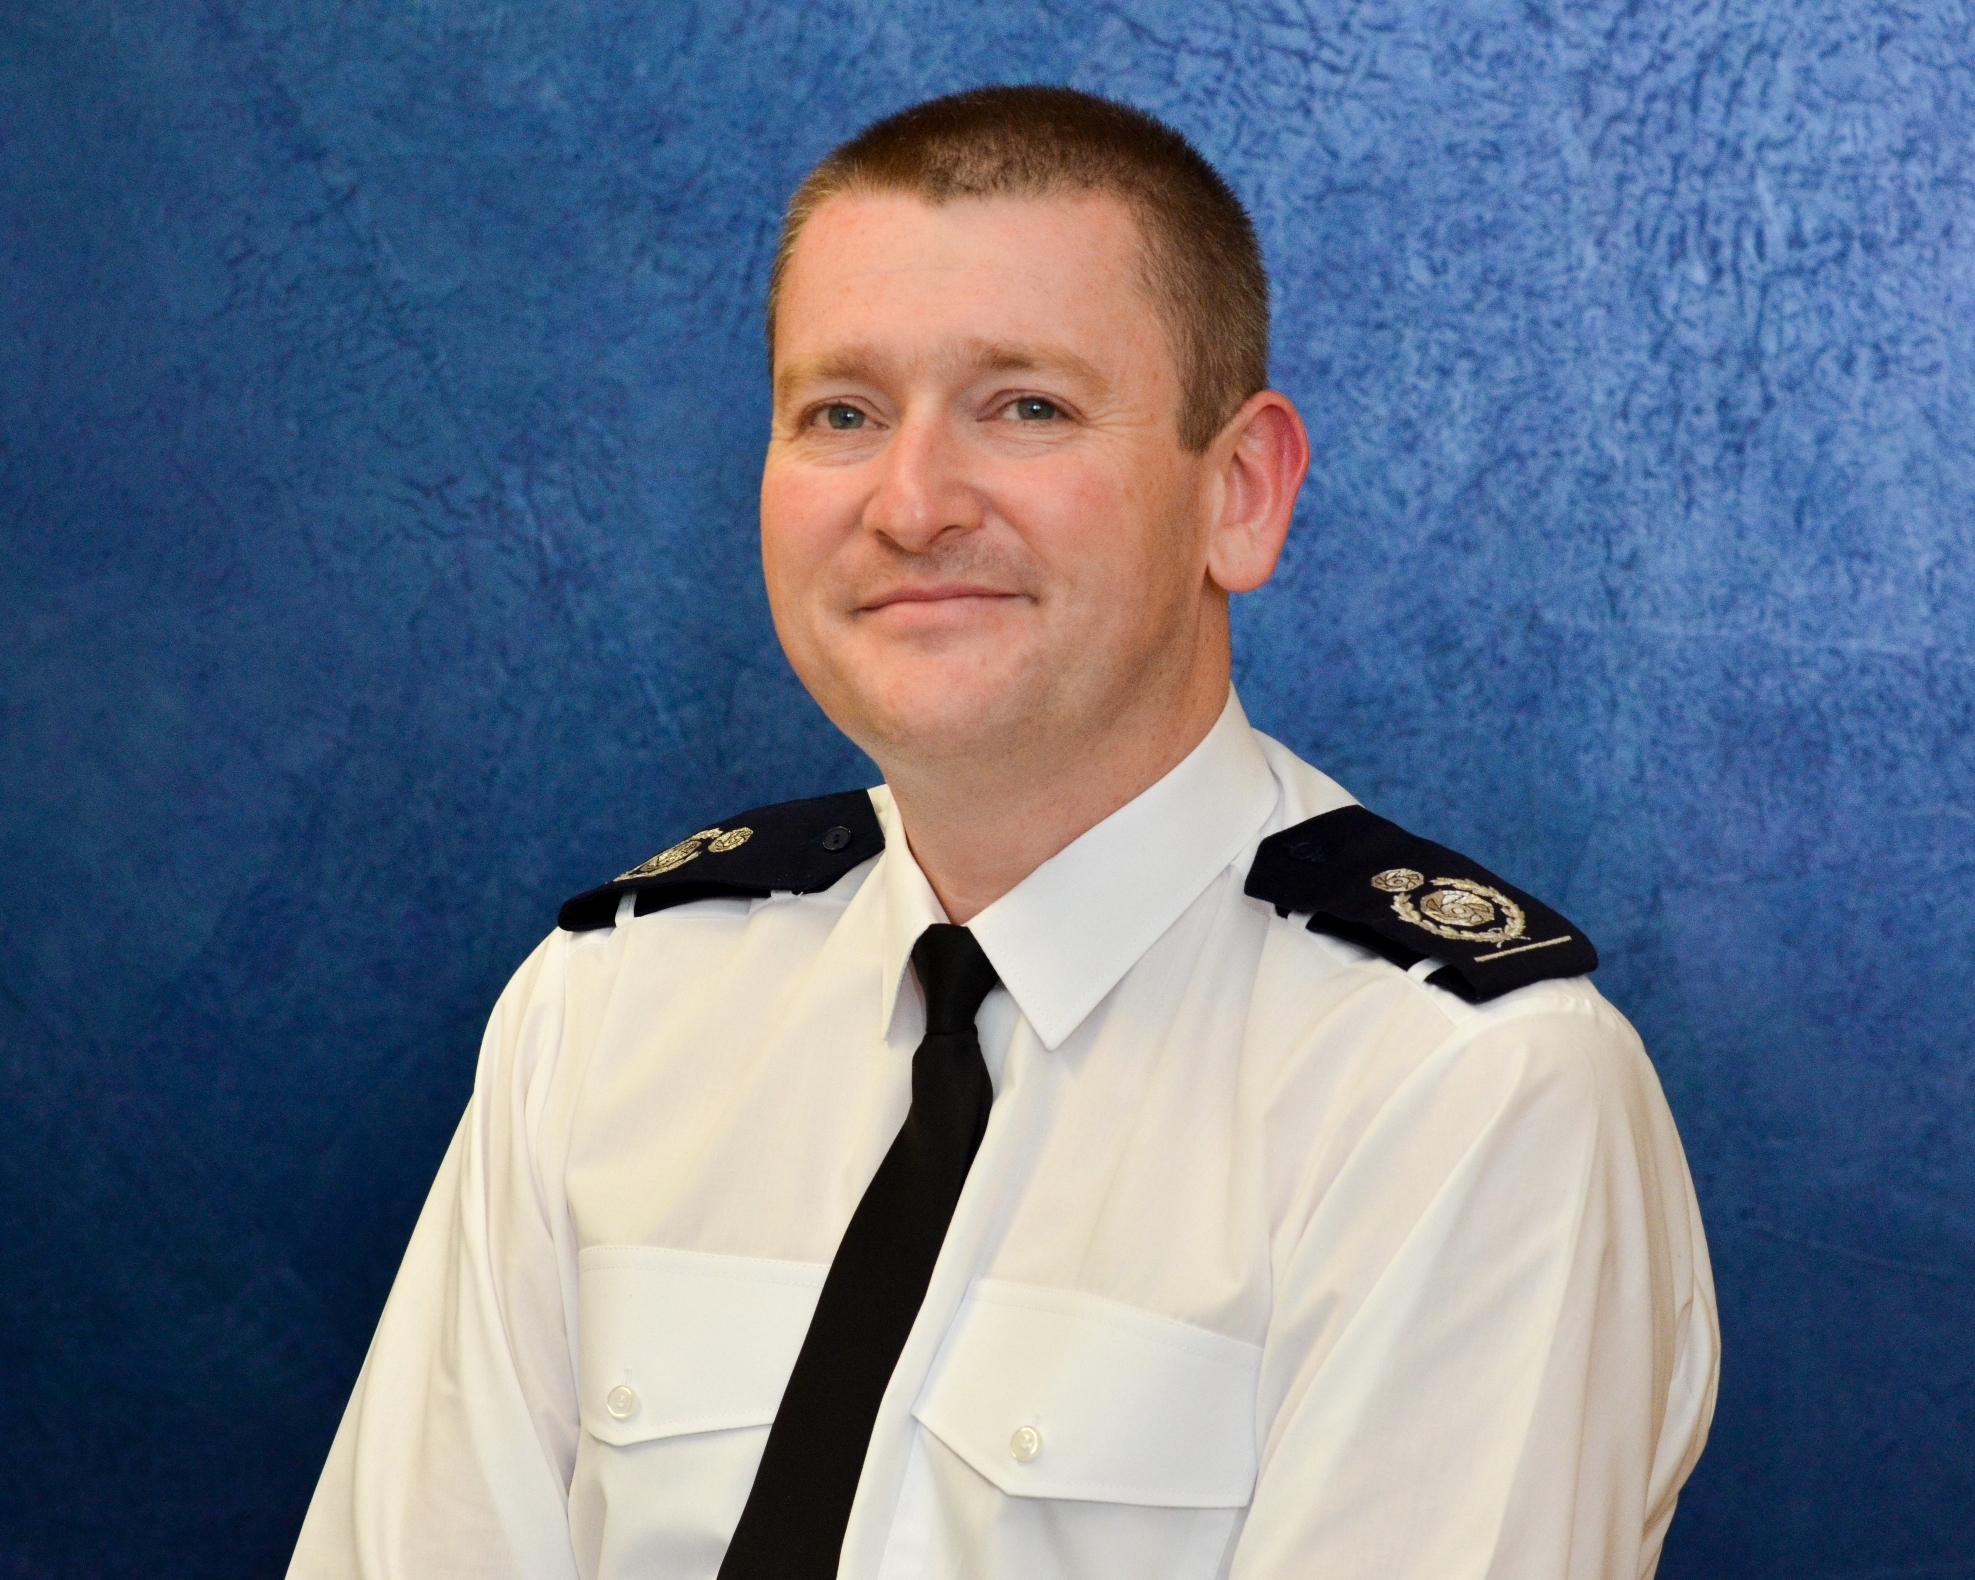 Mark Cashin, who lives in Moore with his wife and daughter, is the new fire chief at Cheshire Fire and Rescue Service